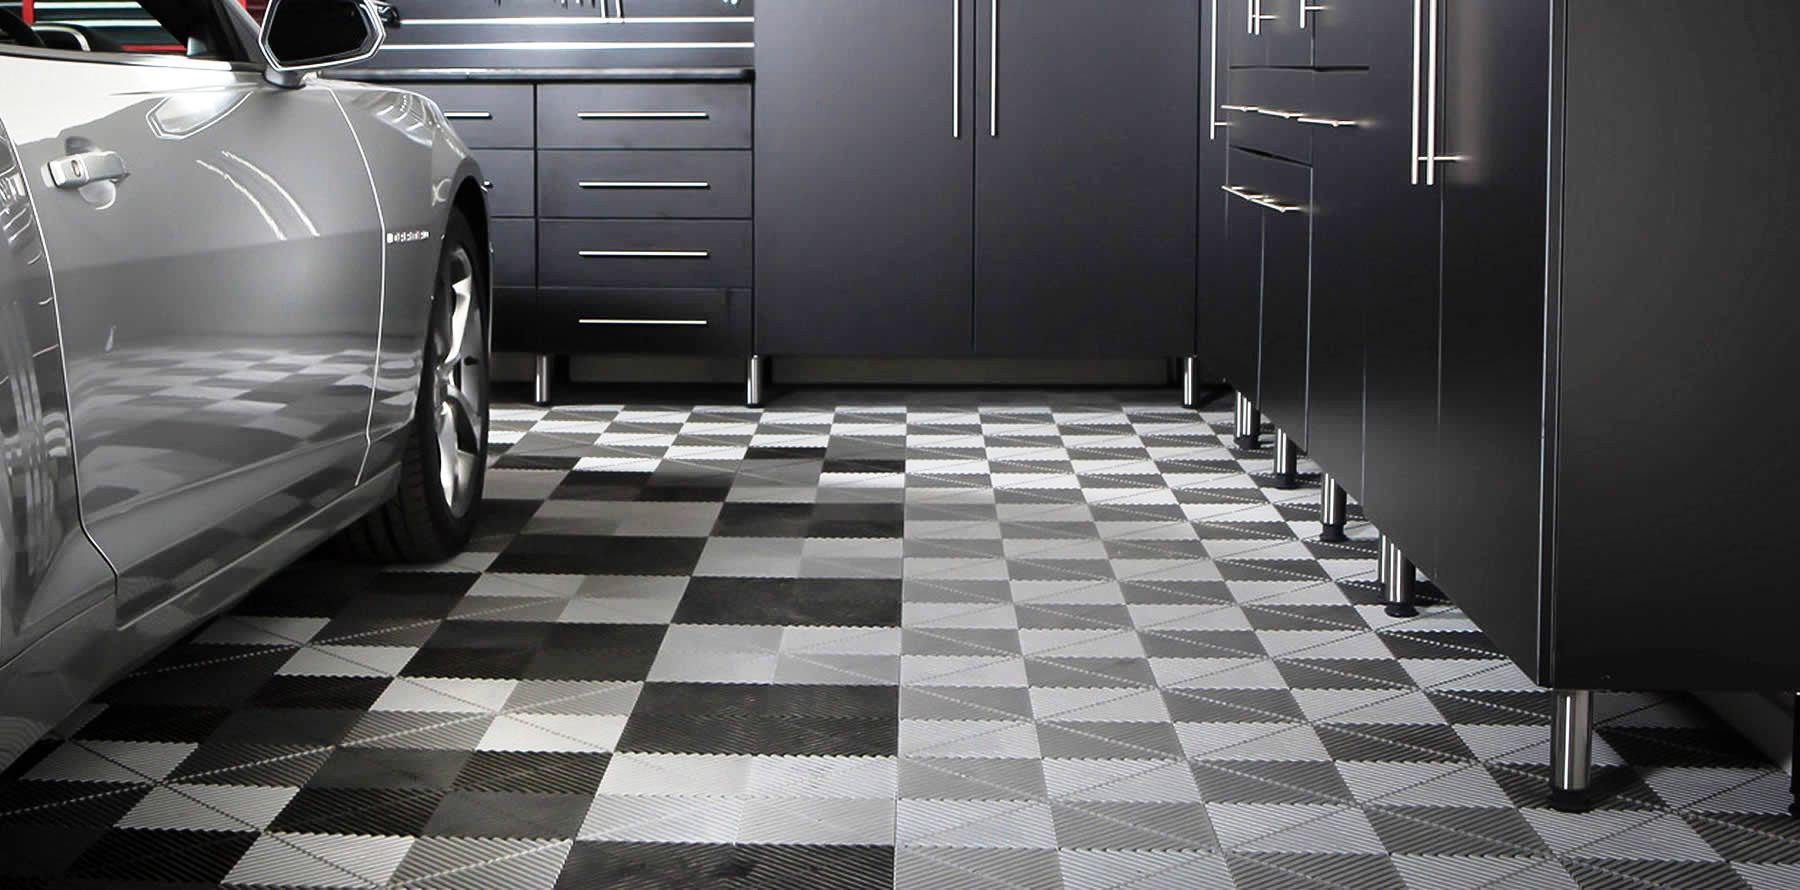 Garage Floor Tiles Or Paint The Lost Secret Of Garage Floor Covering Schmidt Gallery Design